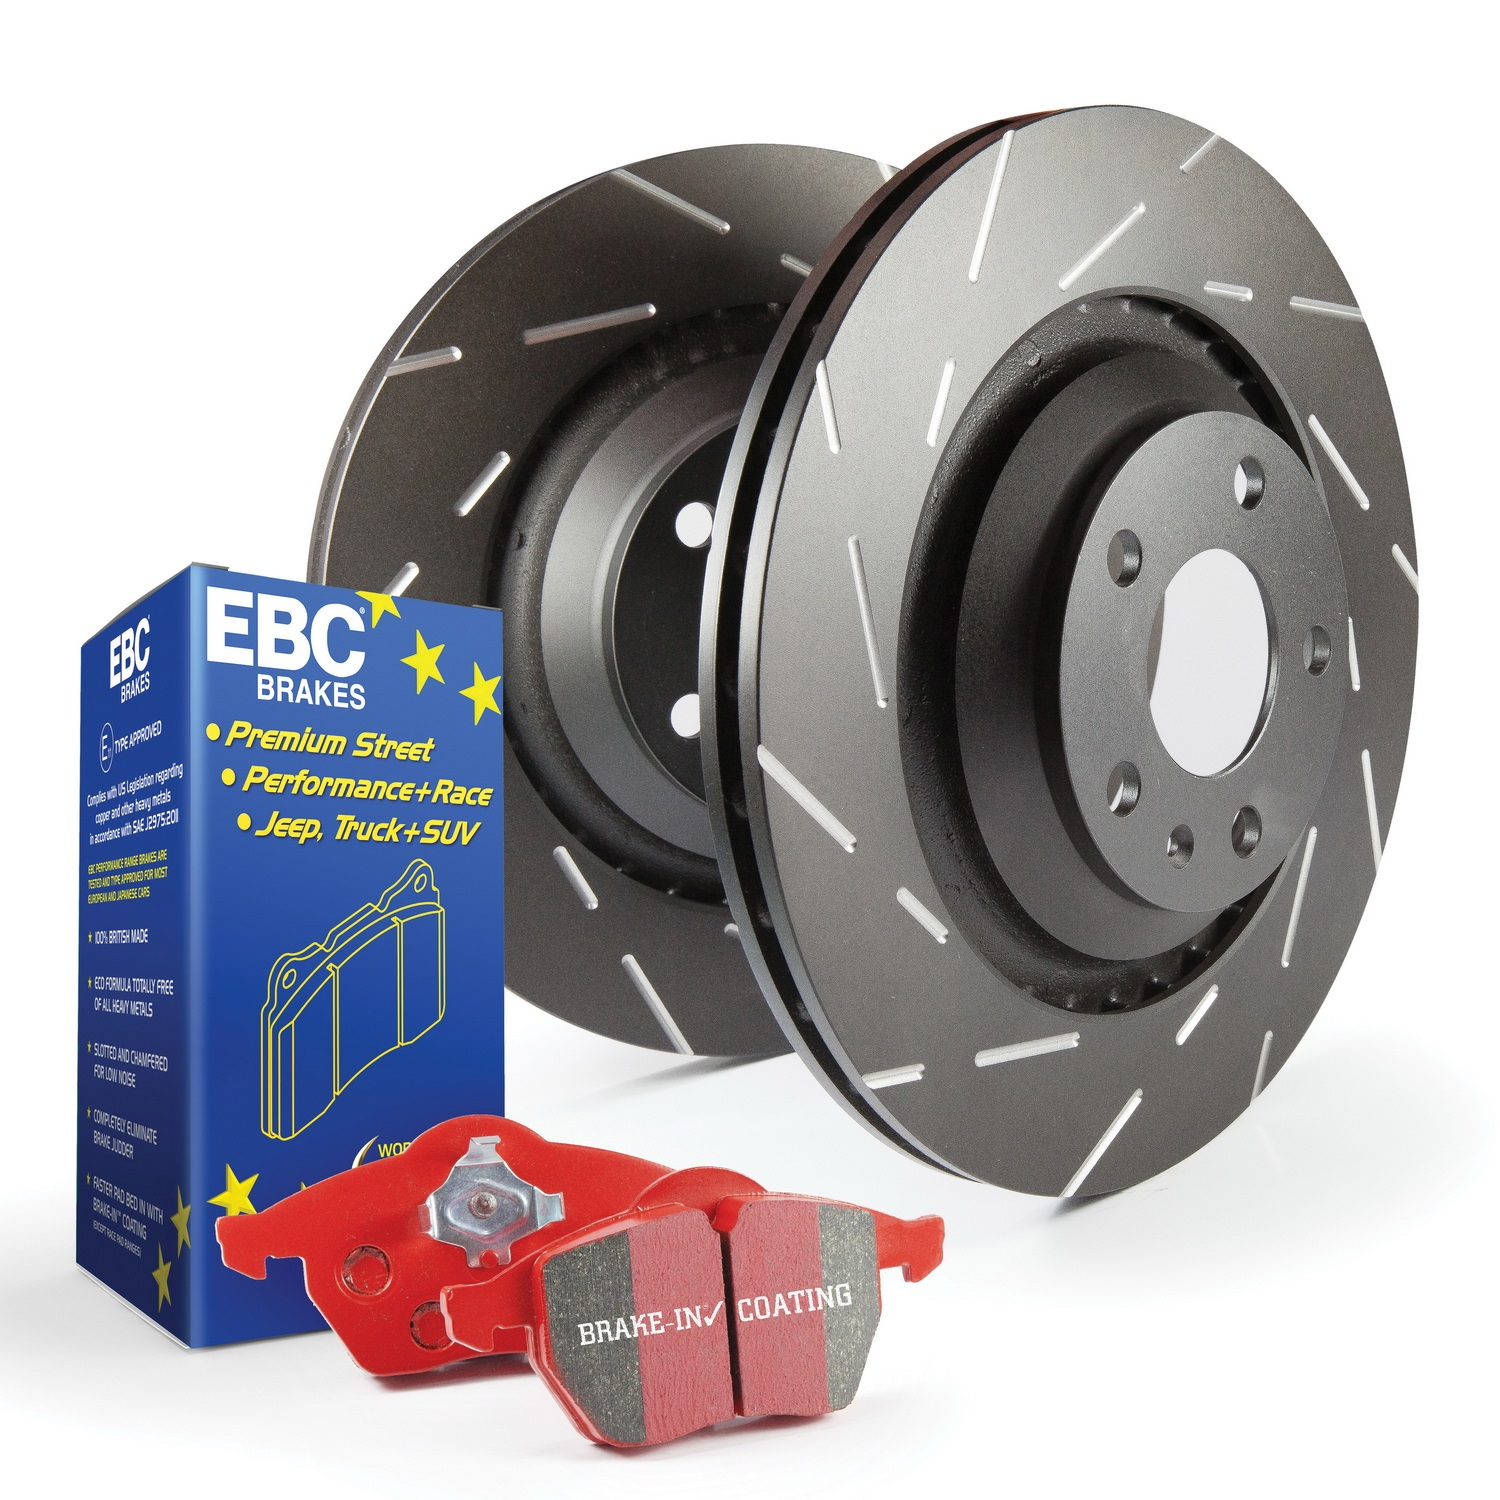 EBC Brakes S4KF1775 S4 Kits Redstuff and USR Rotor Fits 15-18 CTS